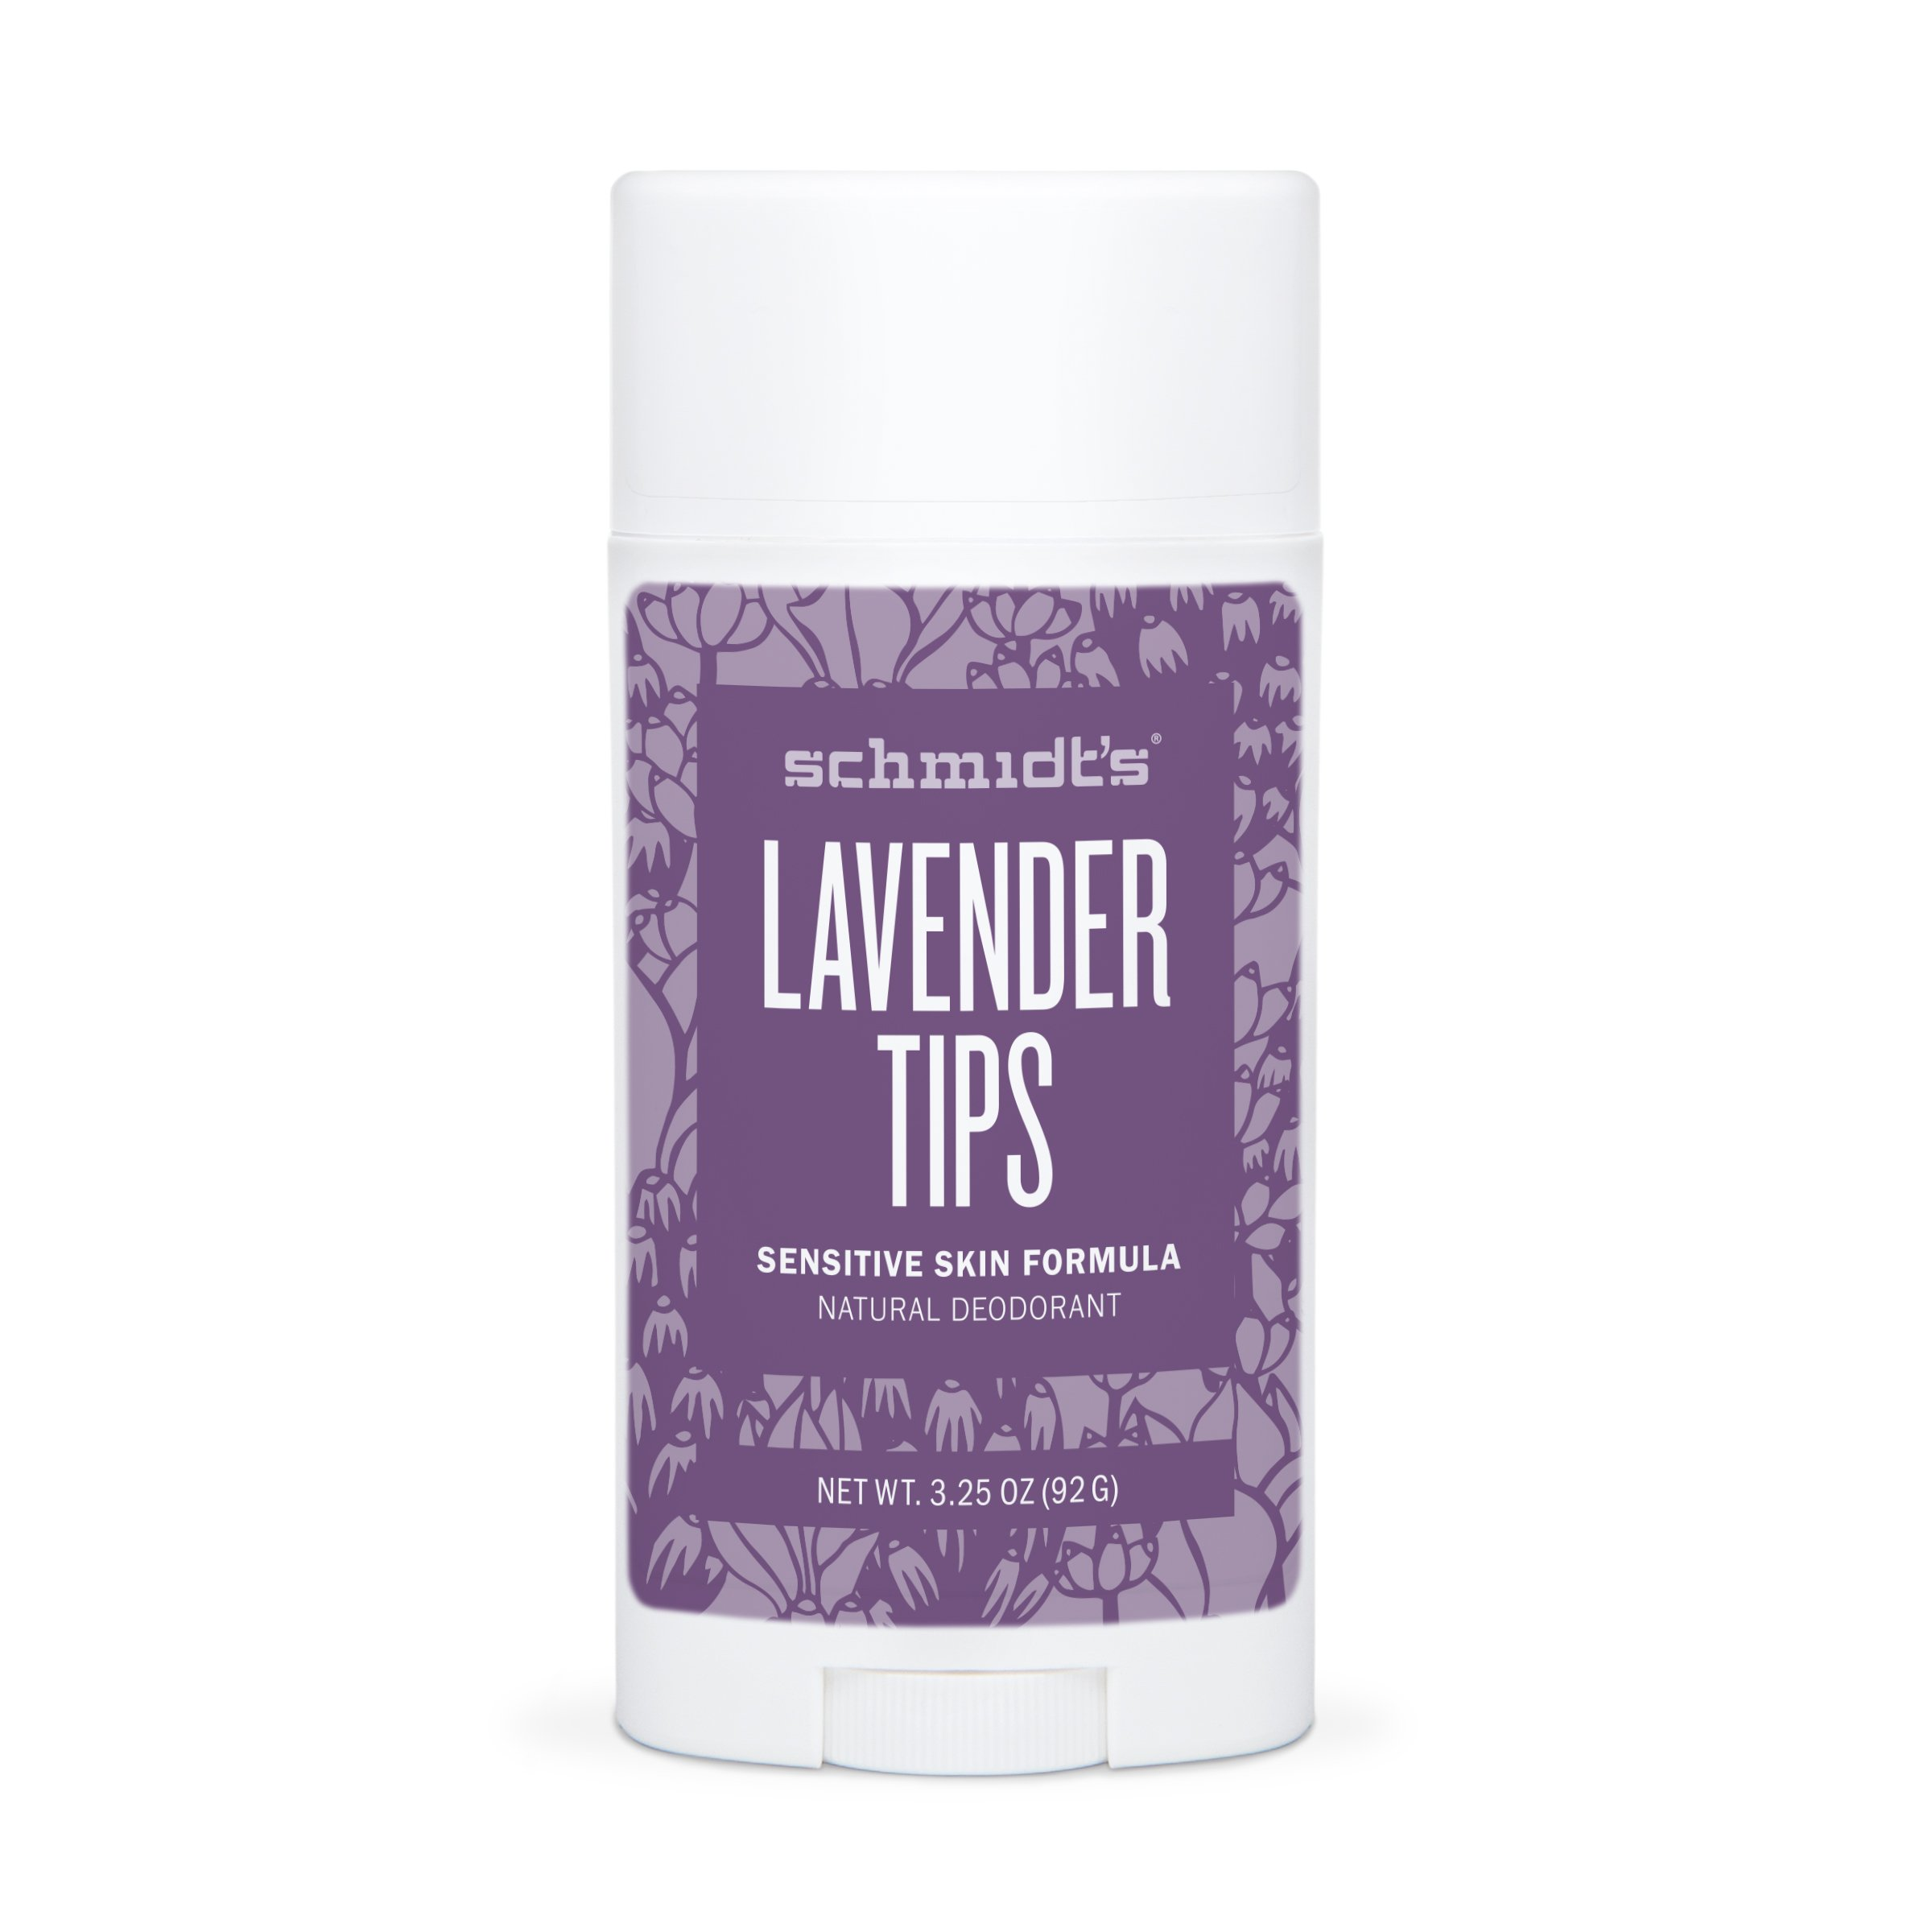 Schmidt's Natural Deodorant - Lavender Tips 3.25 Oz Sensitive Skin Stick; Aluminum-Free Odor Protection & Wetness Relief